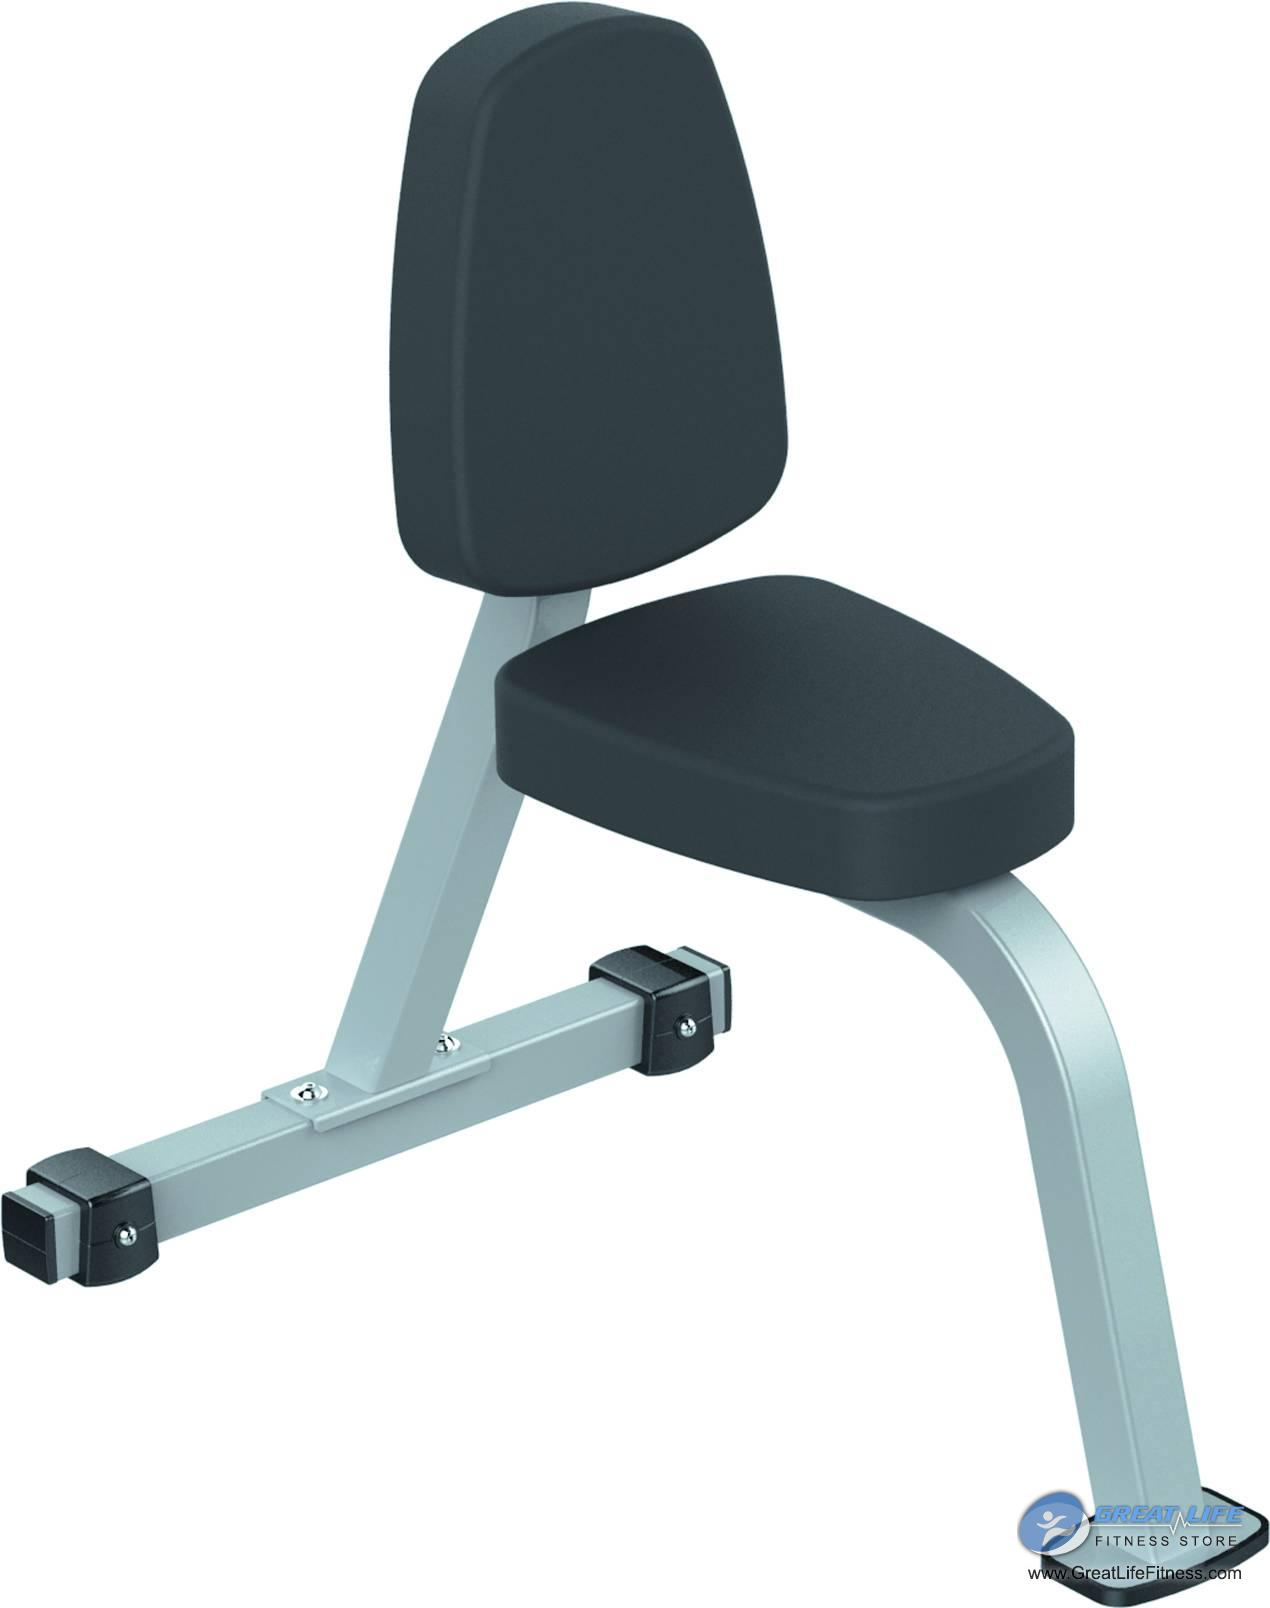 Fitness Gear Utility Bench 28 Images Product Image Fitness Gear Utility Weight Bench Good